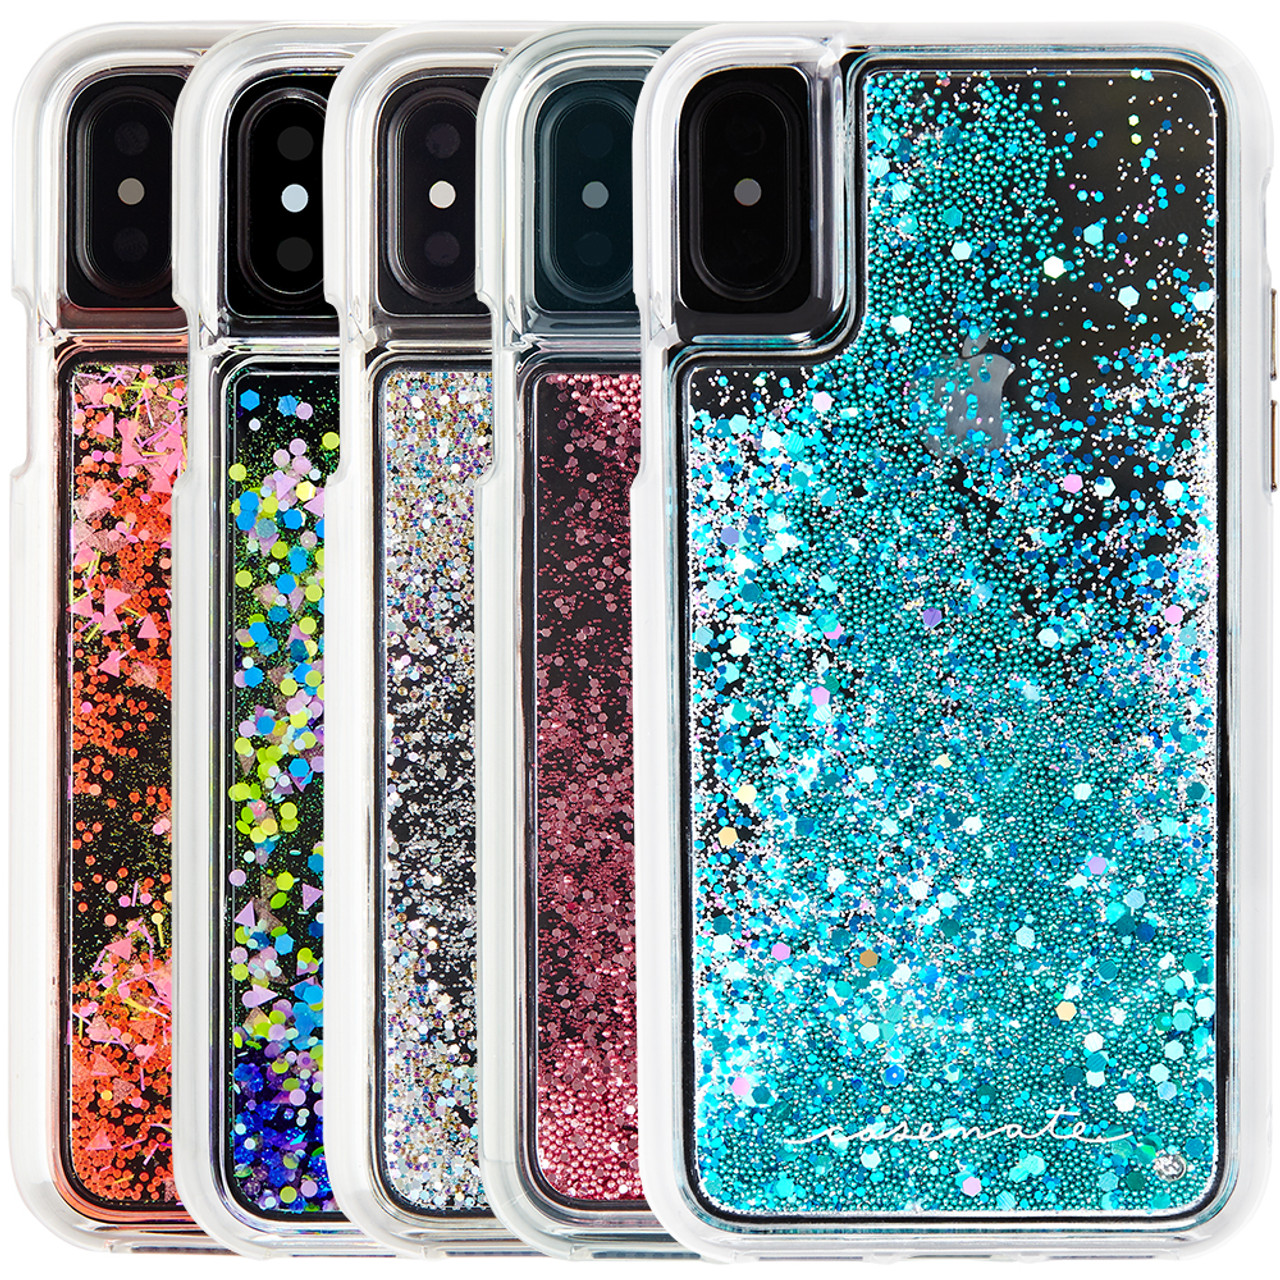 outlet store e7f8a a7054 Case-Mate Waterfall Case for Apple iPhone XS / X